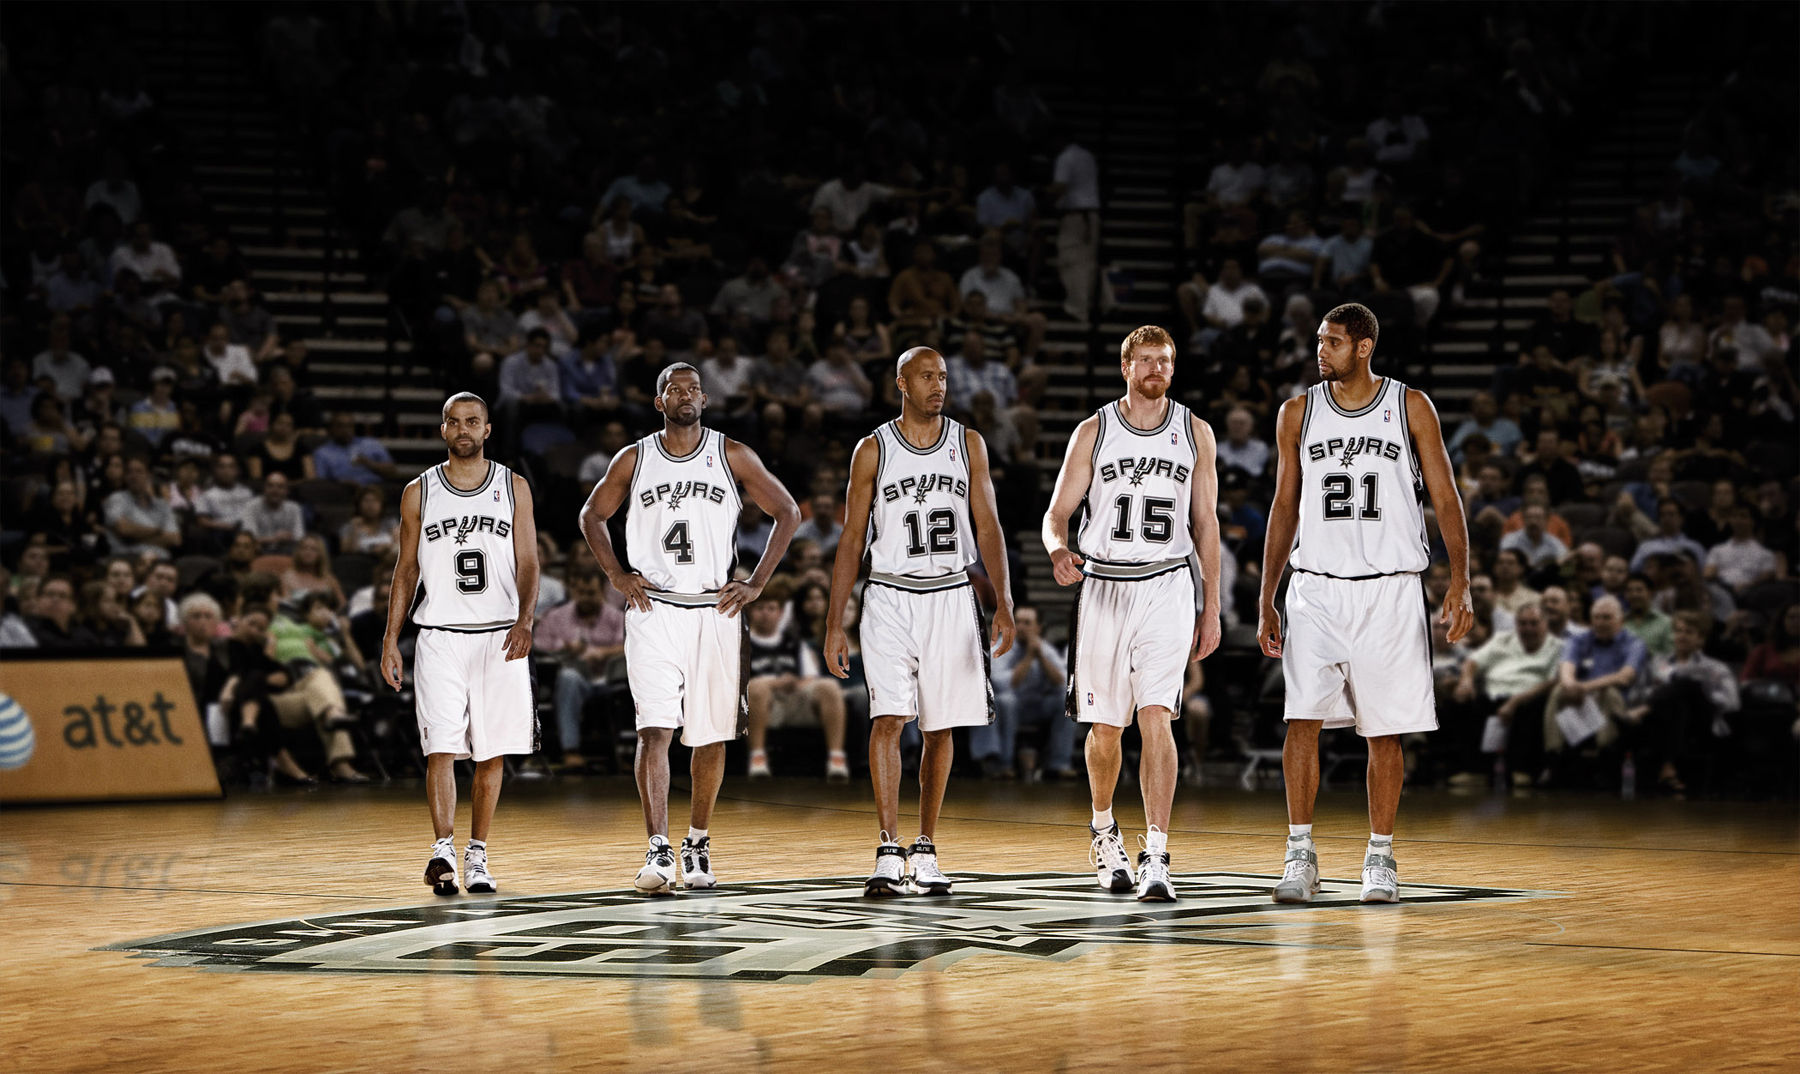 San antonio spurs wallpapers high resolution and quality download san antonio spurs computer wallpaper voltagebd Image collections